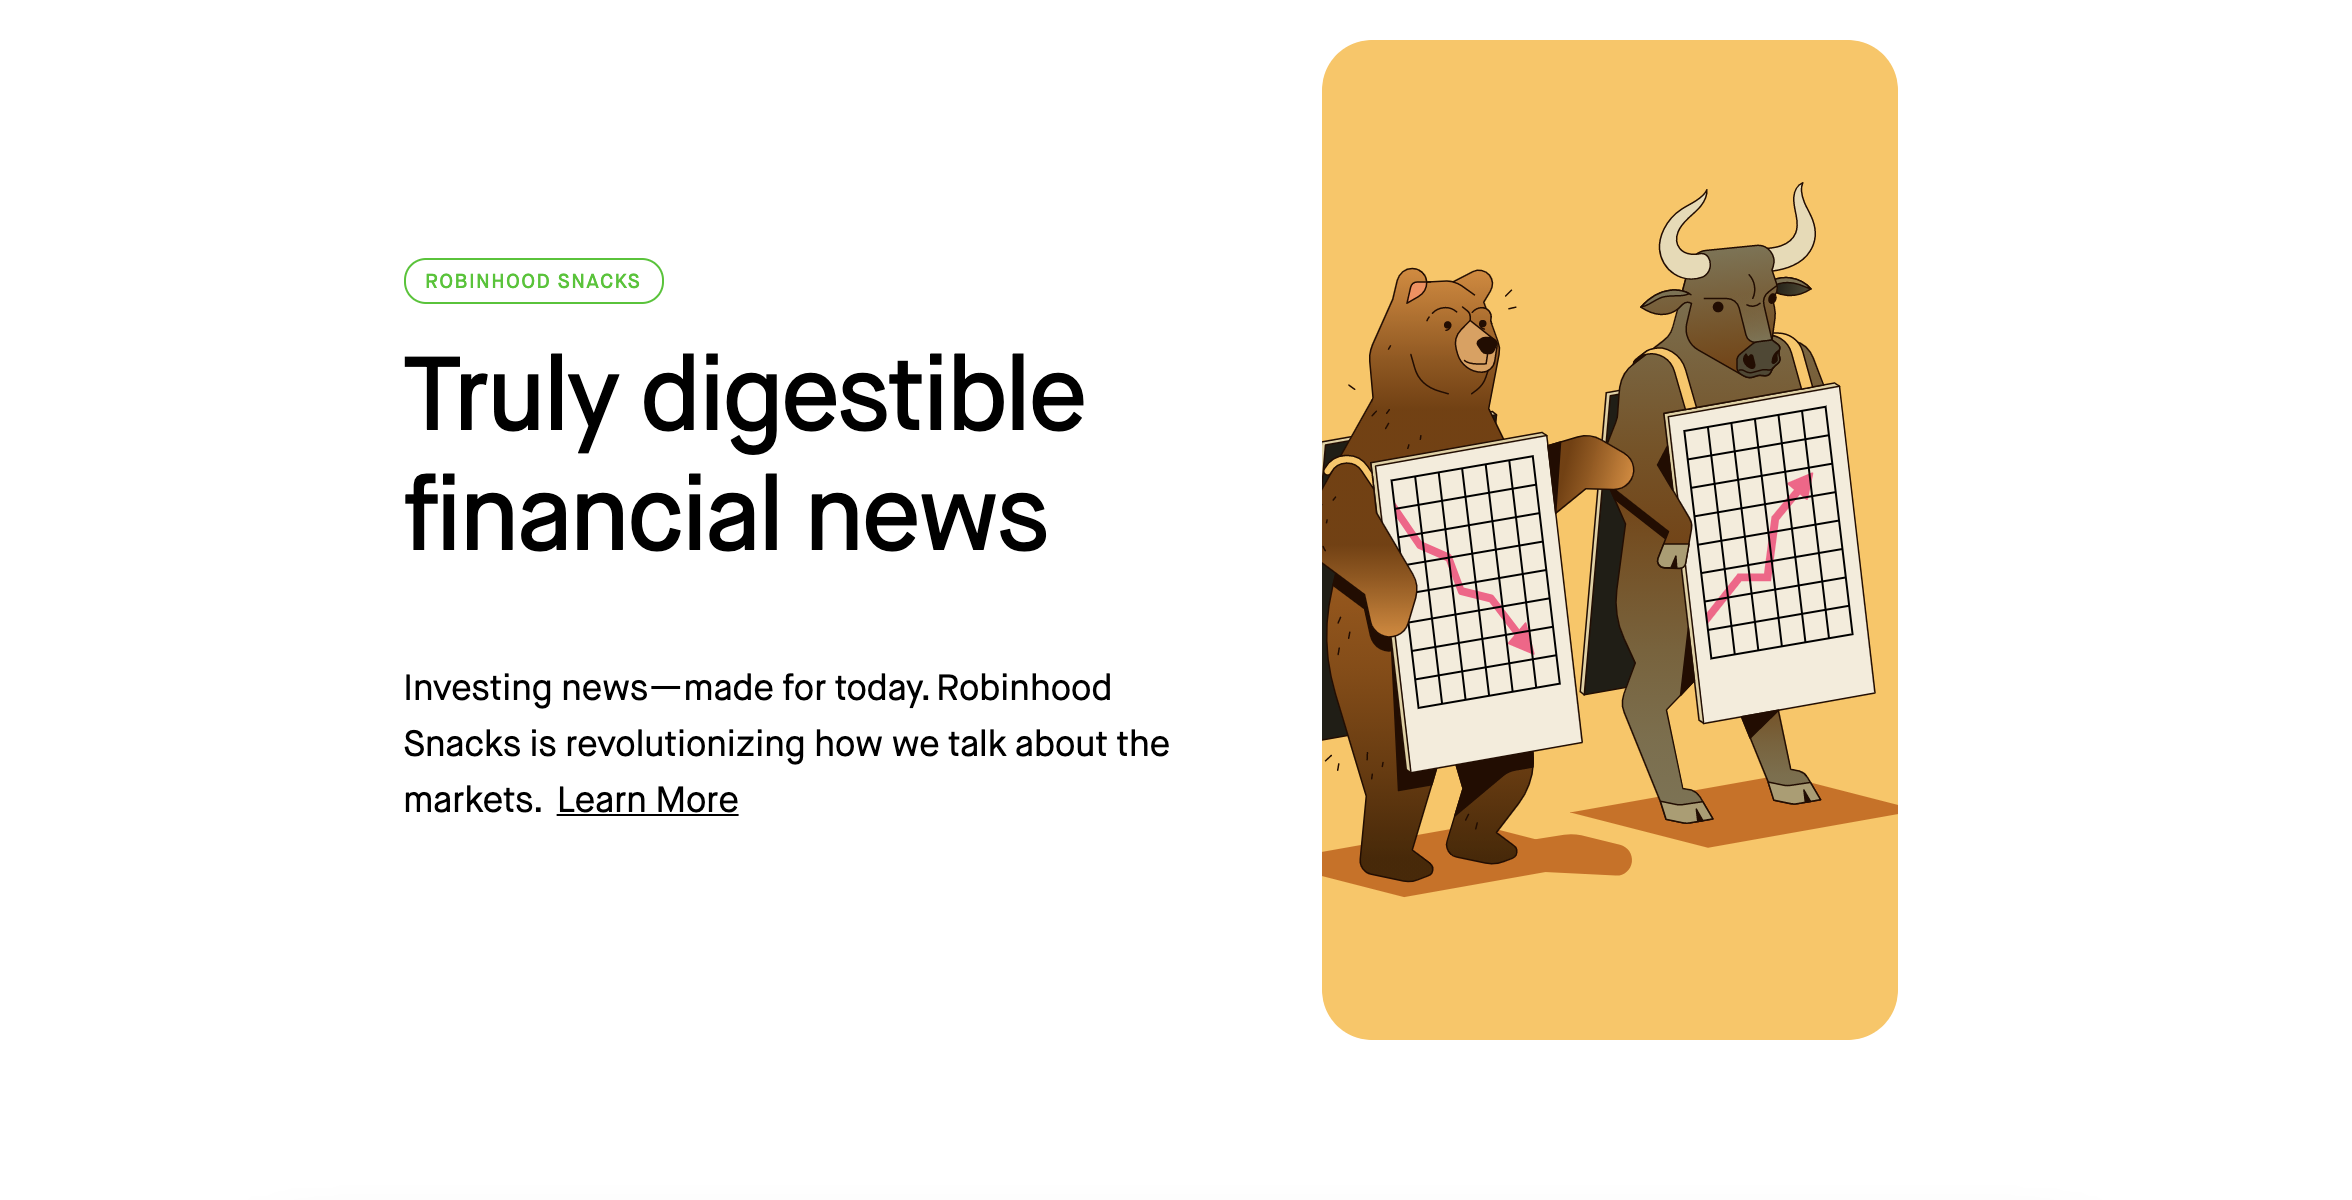 Robinhood has educational tools for investors of all skill levels, particularly those just starting out. Image from robinhood.com